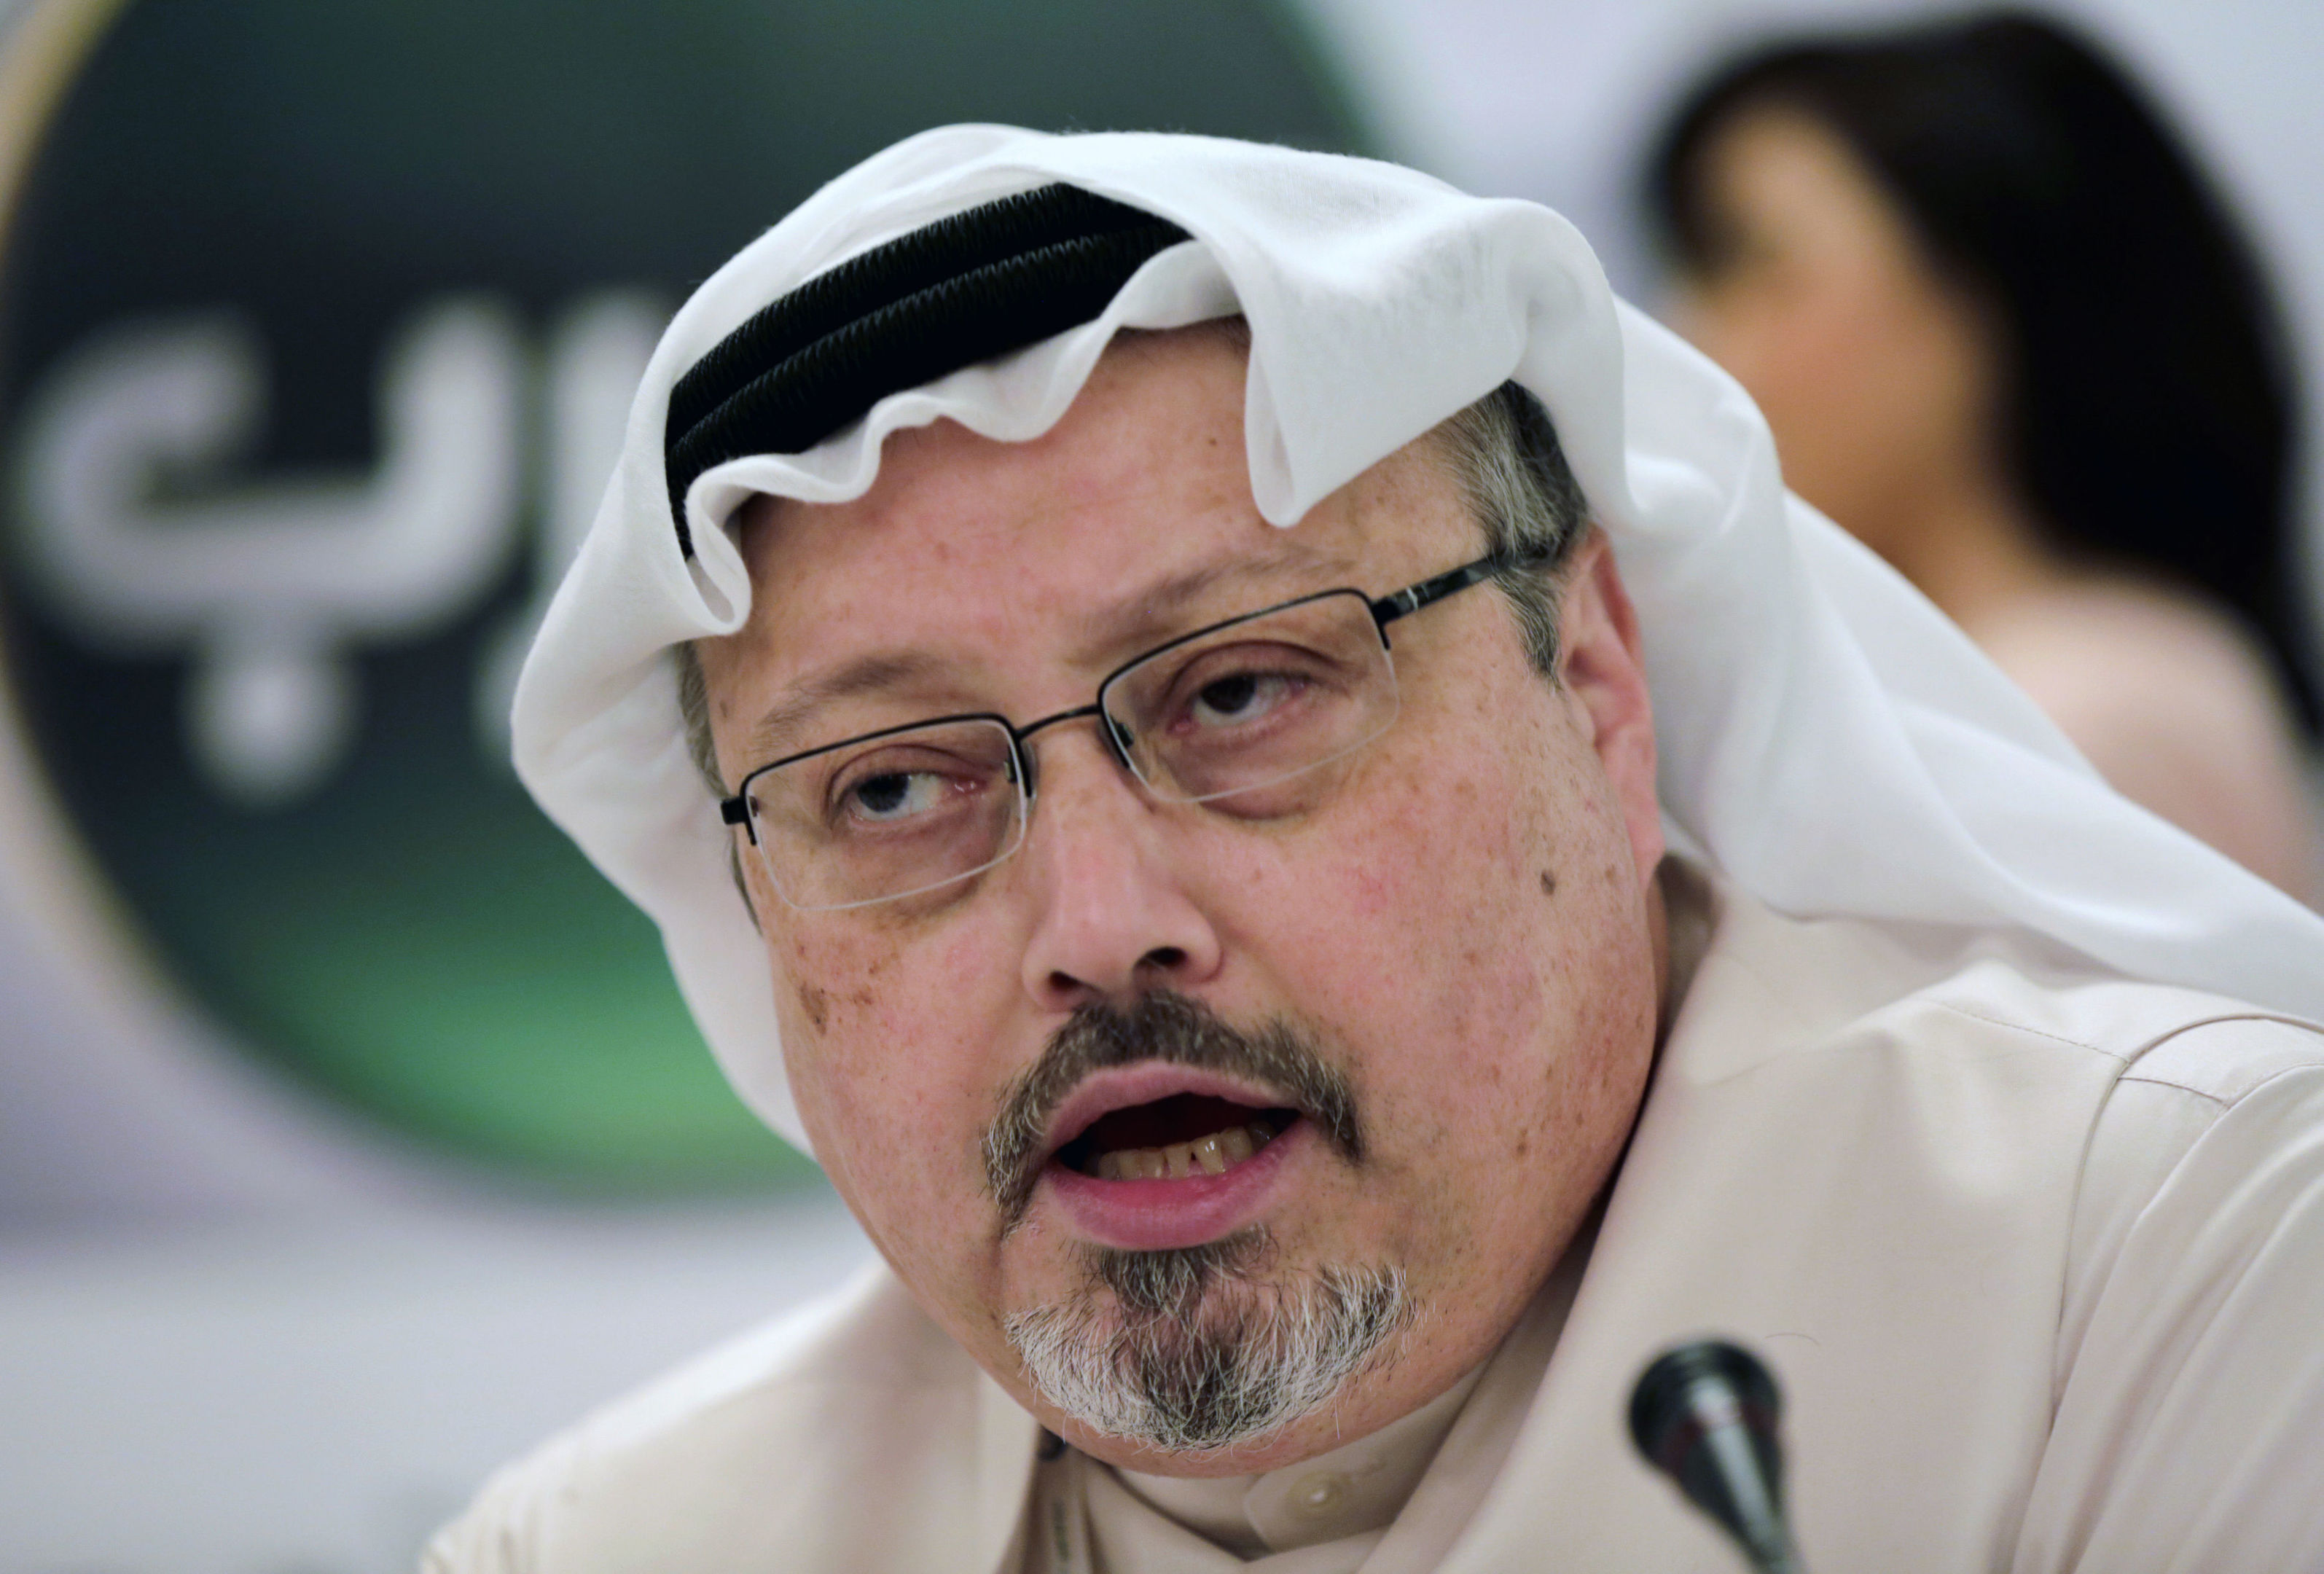 Saudi journalist Jamal Khashoggi (AP Photo/Hasan Jamali, File)